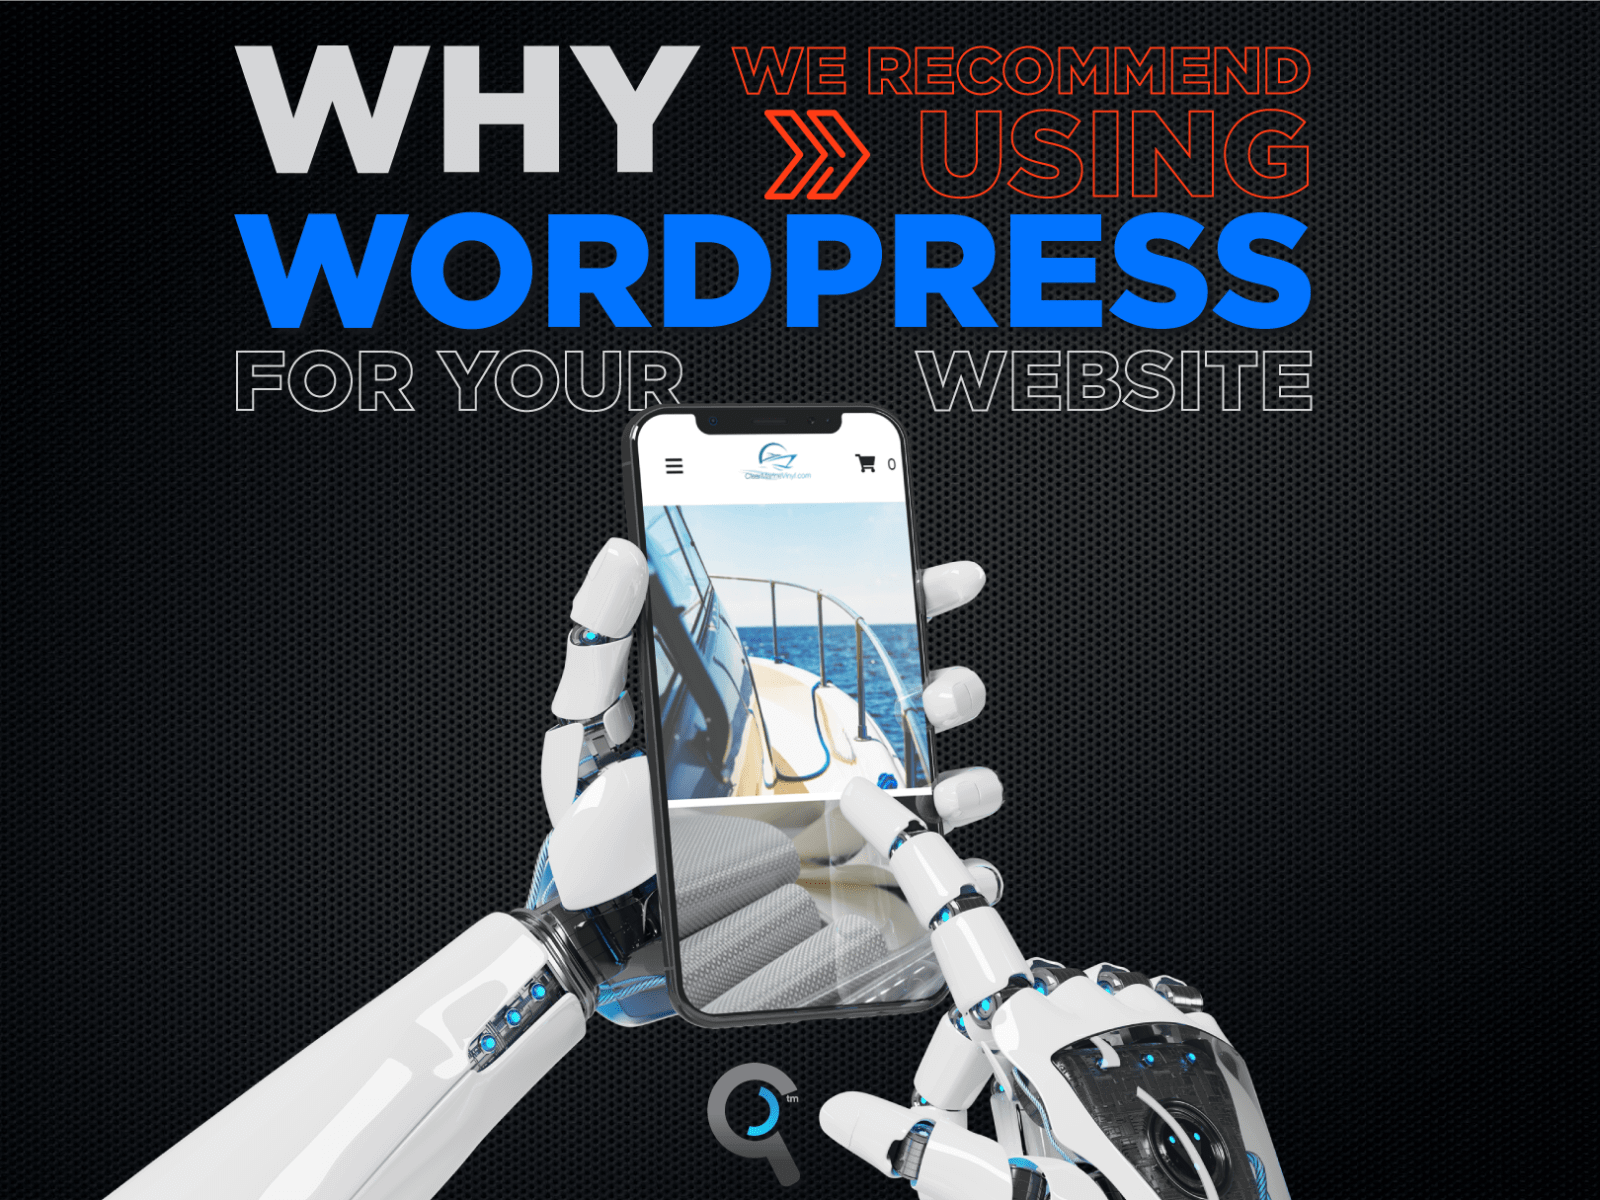 Why we recommend using WordPress: